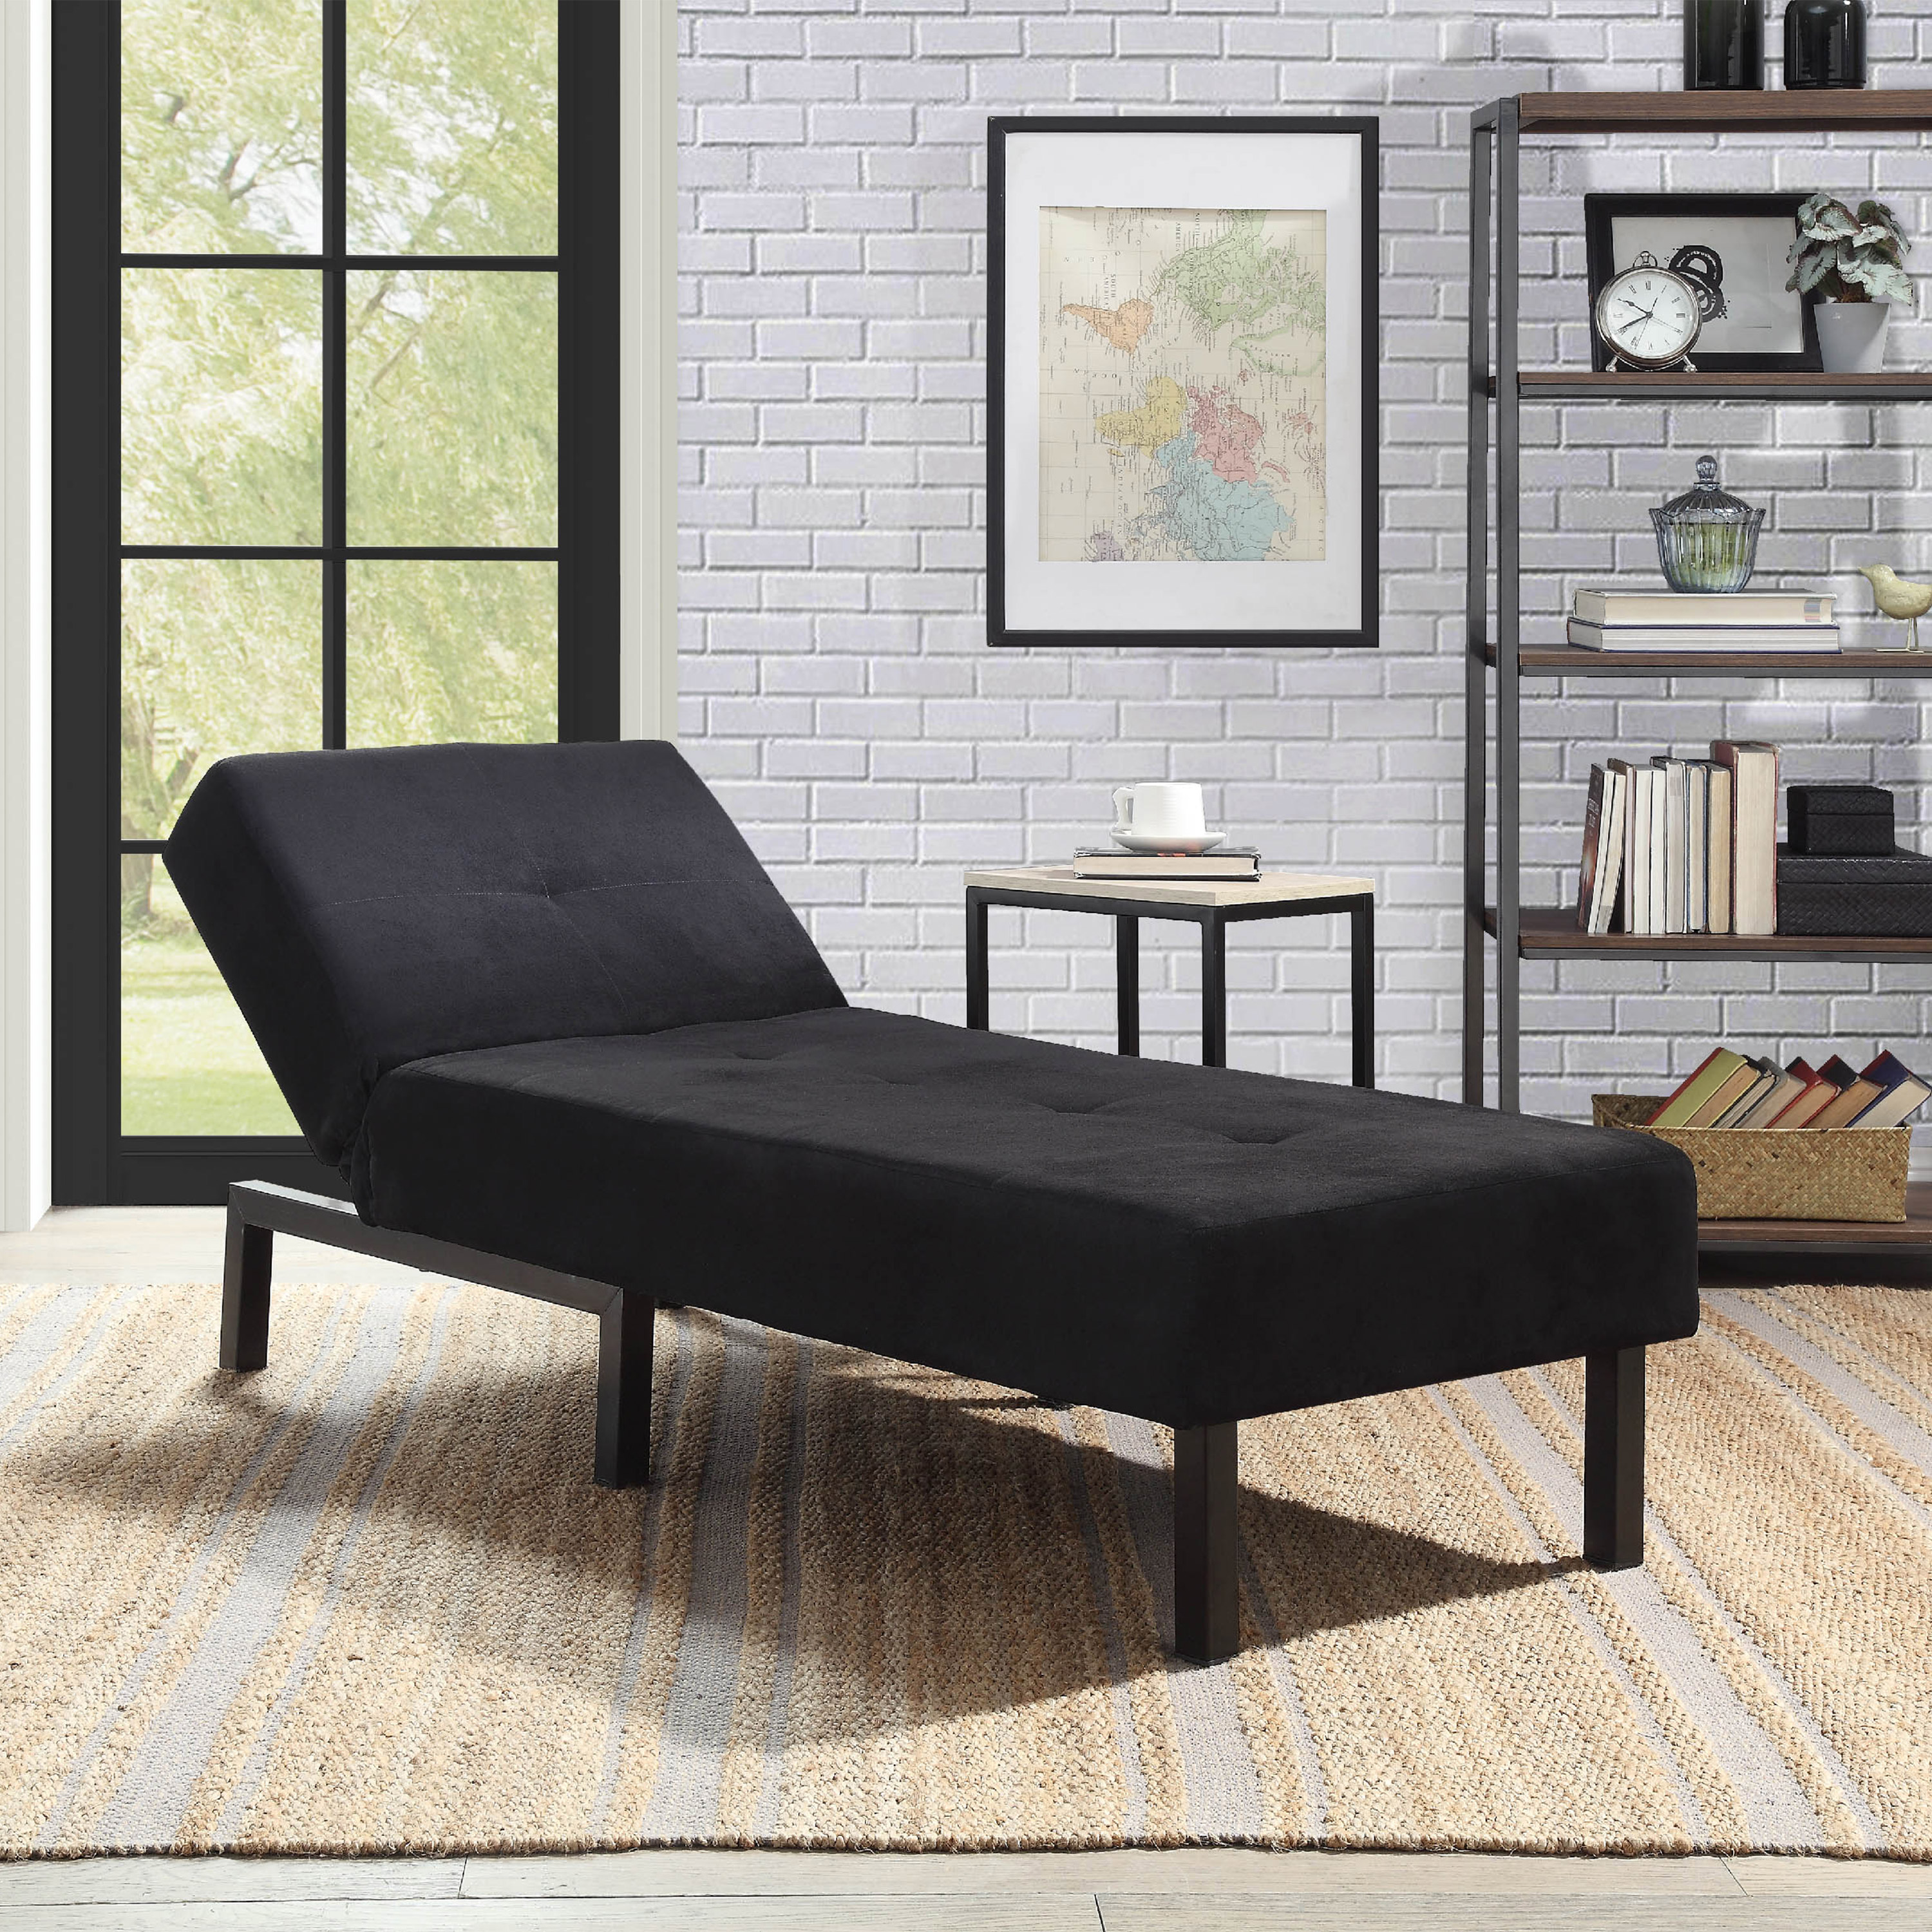 Black Chaise Lounge Chair Day Bed Sleeper Sofa Fiat Bed Lounger